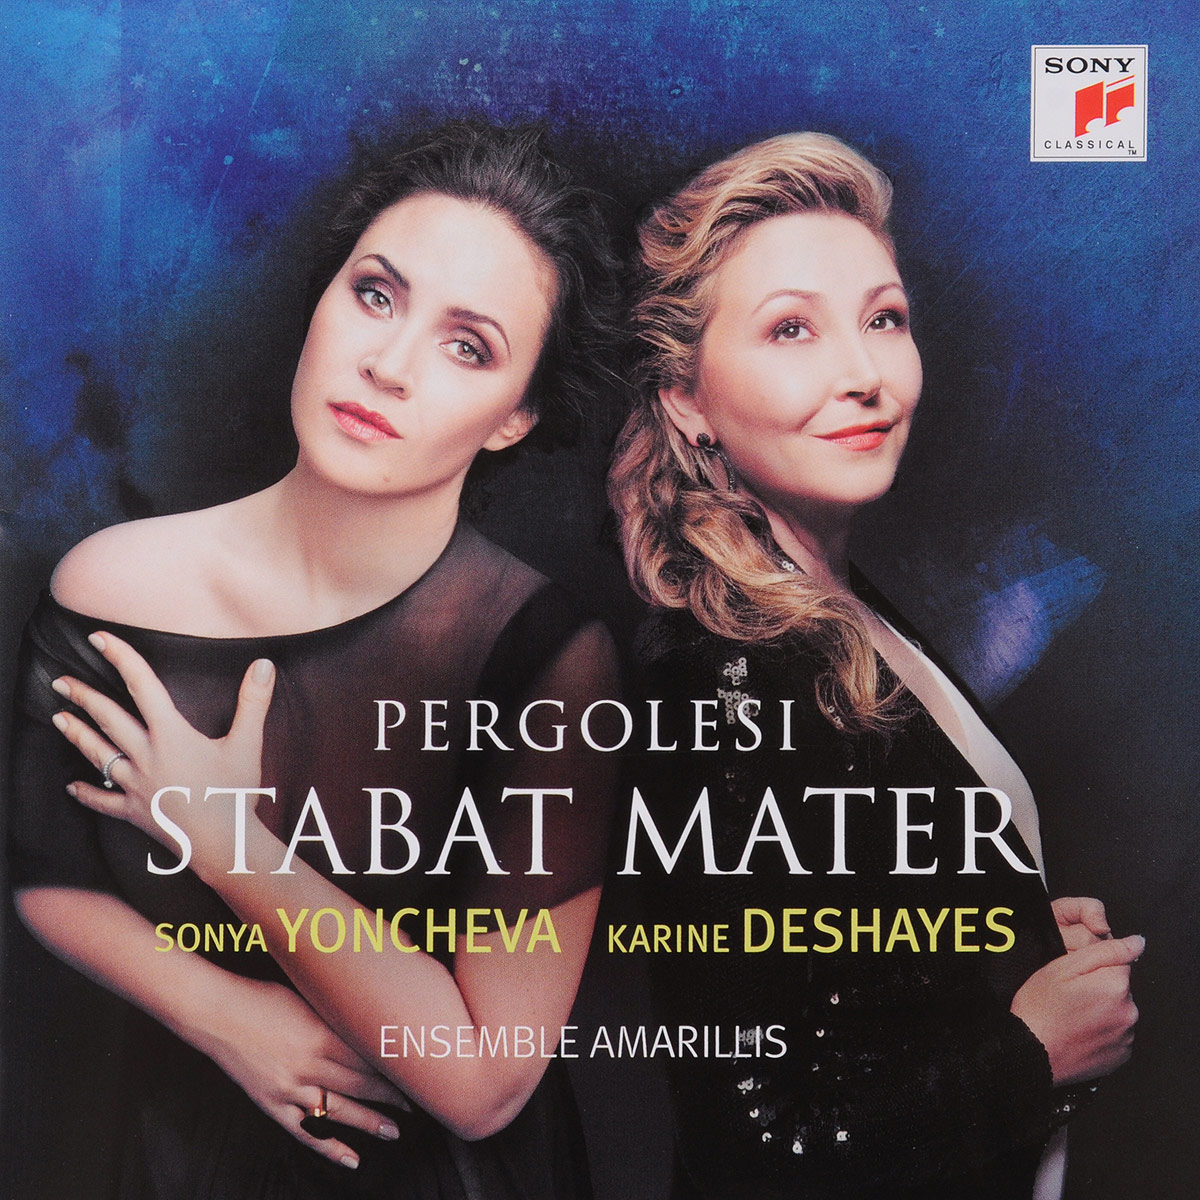 Sonya Yoncheva Sonya Yoncheva / Karine Deshayes. Pergolesi Stabat Mater redston c cunningham g face2face elementary student s book pack a1 a2 dvd online workbook